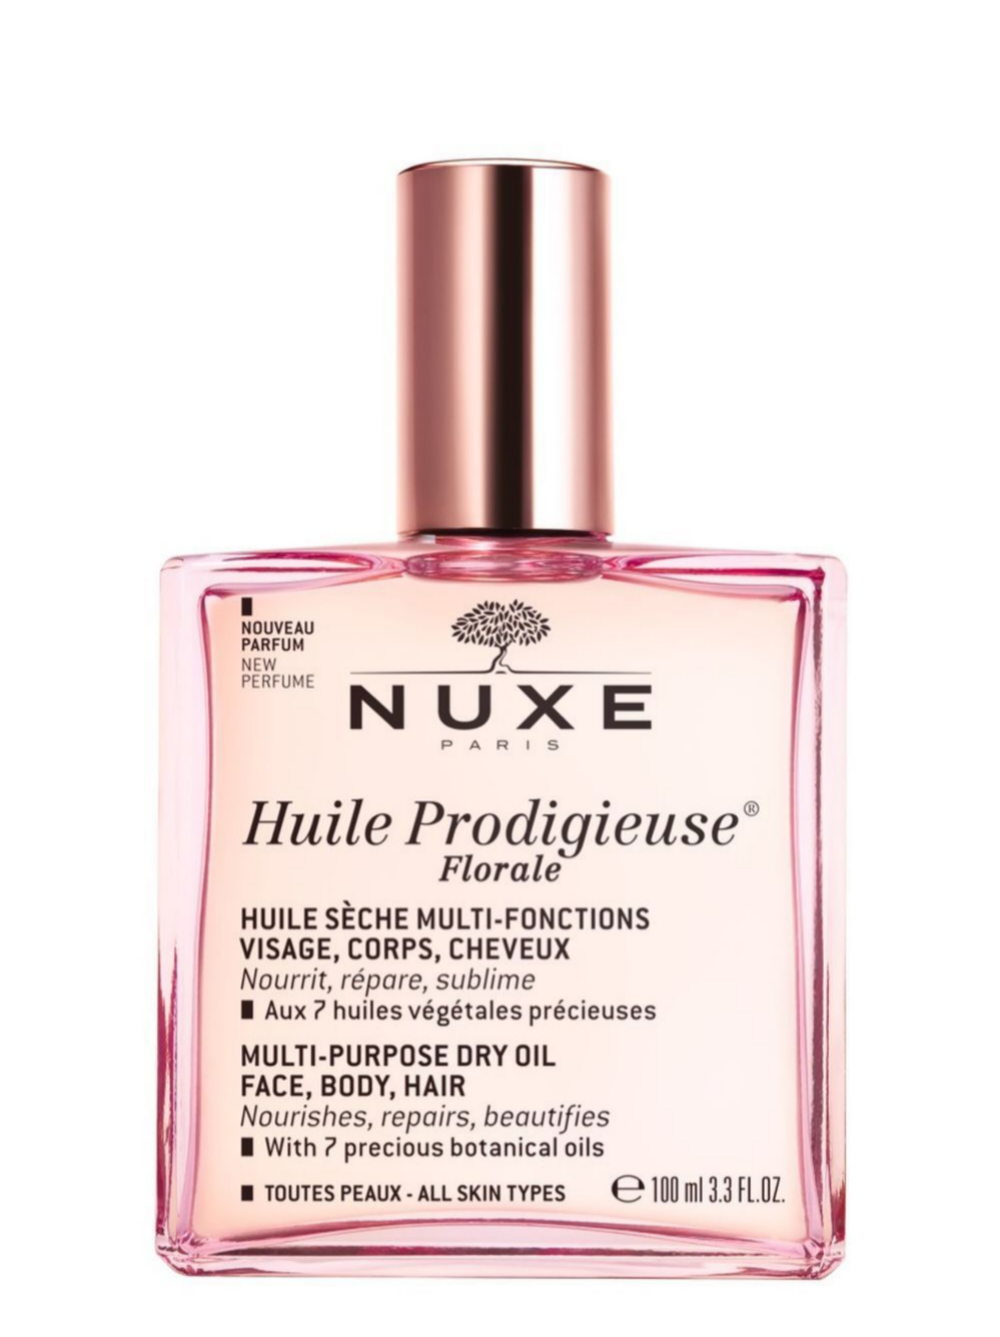 Huile Prodigieuse Florale, Nuxe (29,90 ¤).